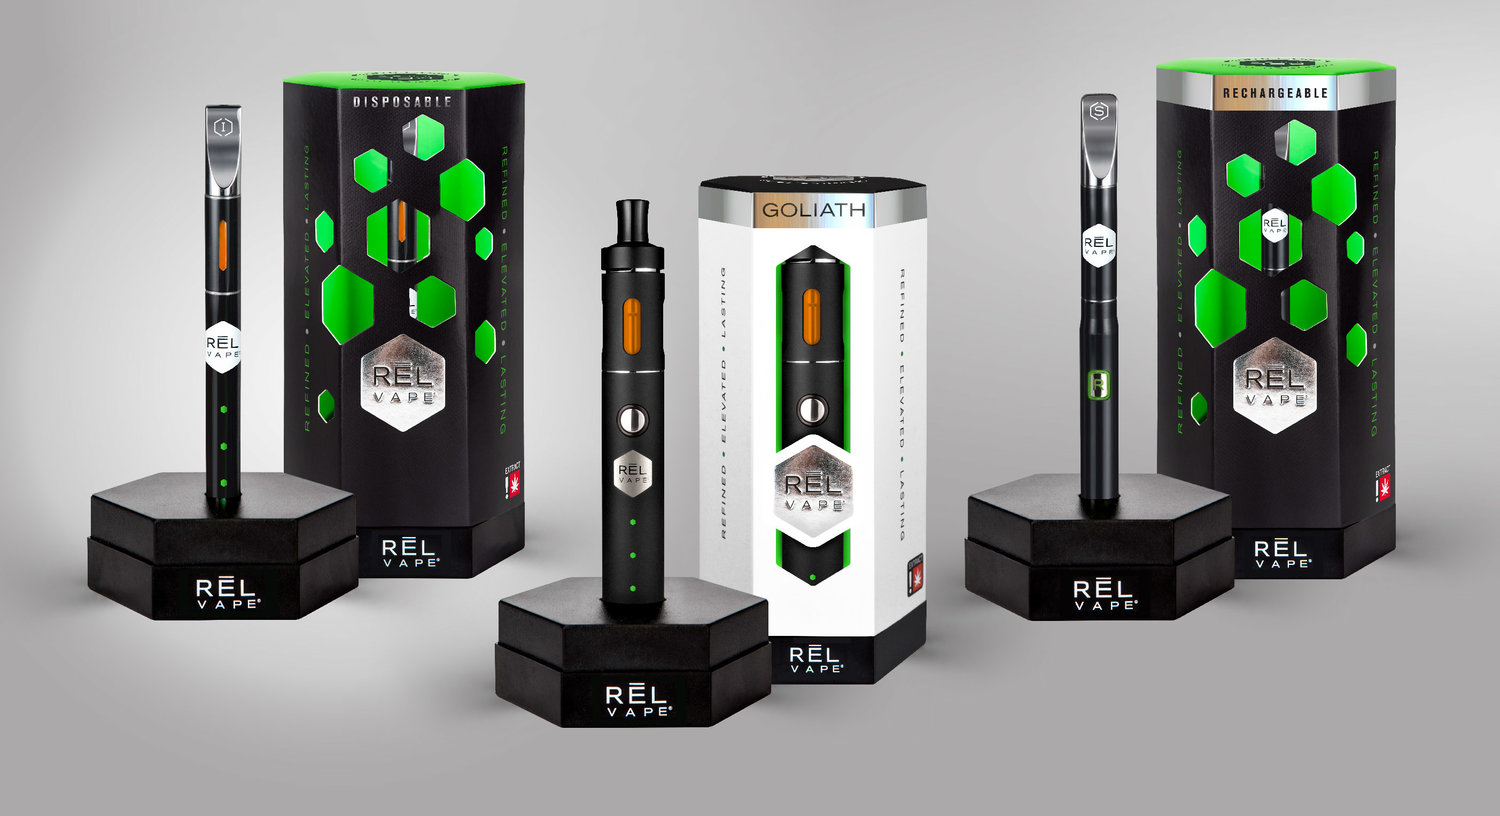 2-RĒL-VAPE-products-3UP-with-pens-1-01-cannabis-marijuanna-graphic-design-CA.jpg